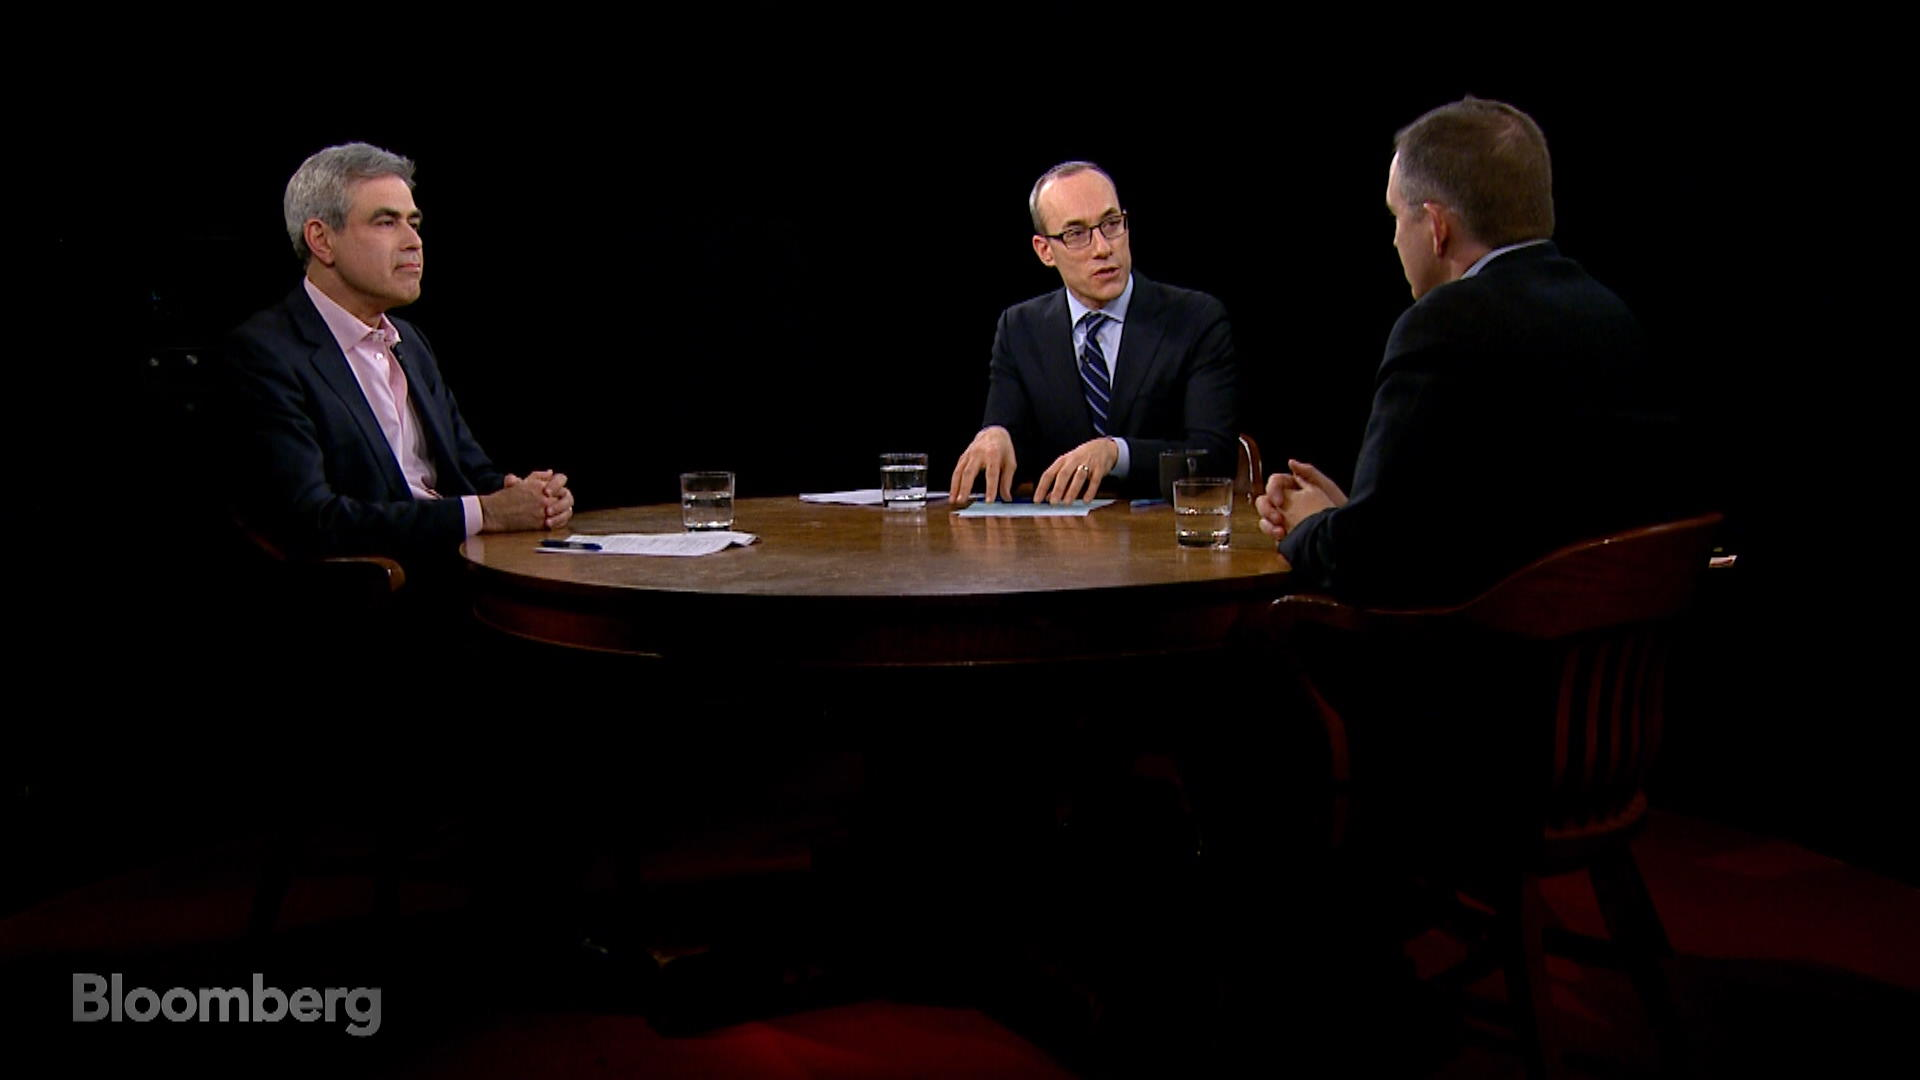 Free Speech on College Campuses: Charlie Rose